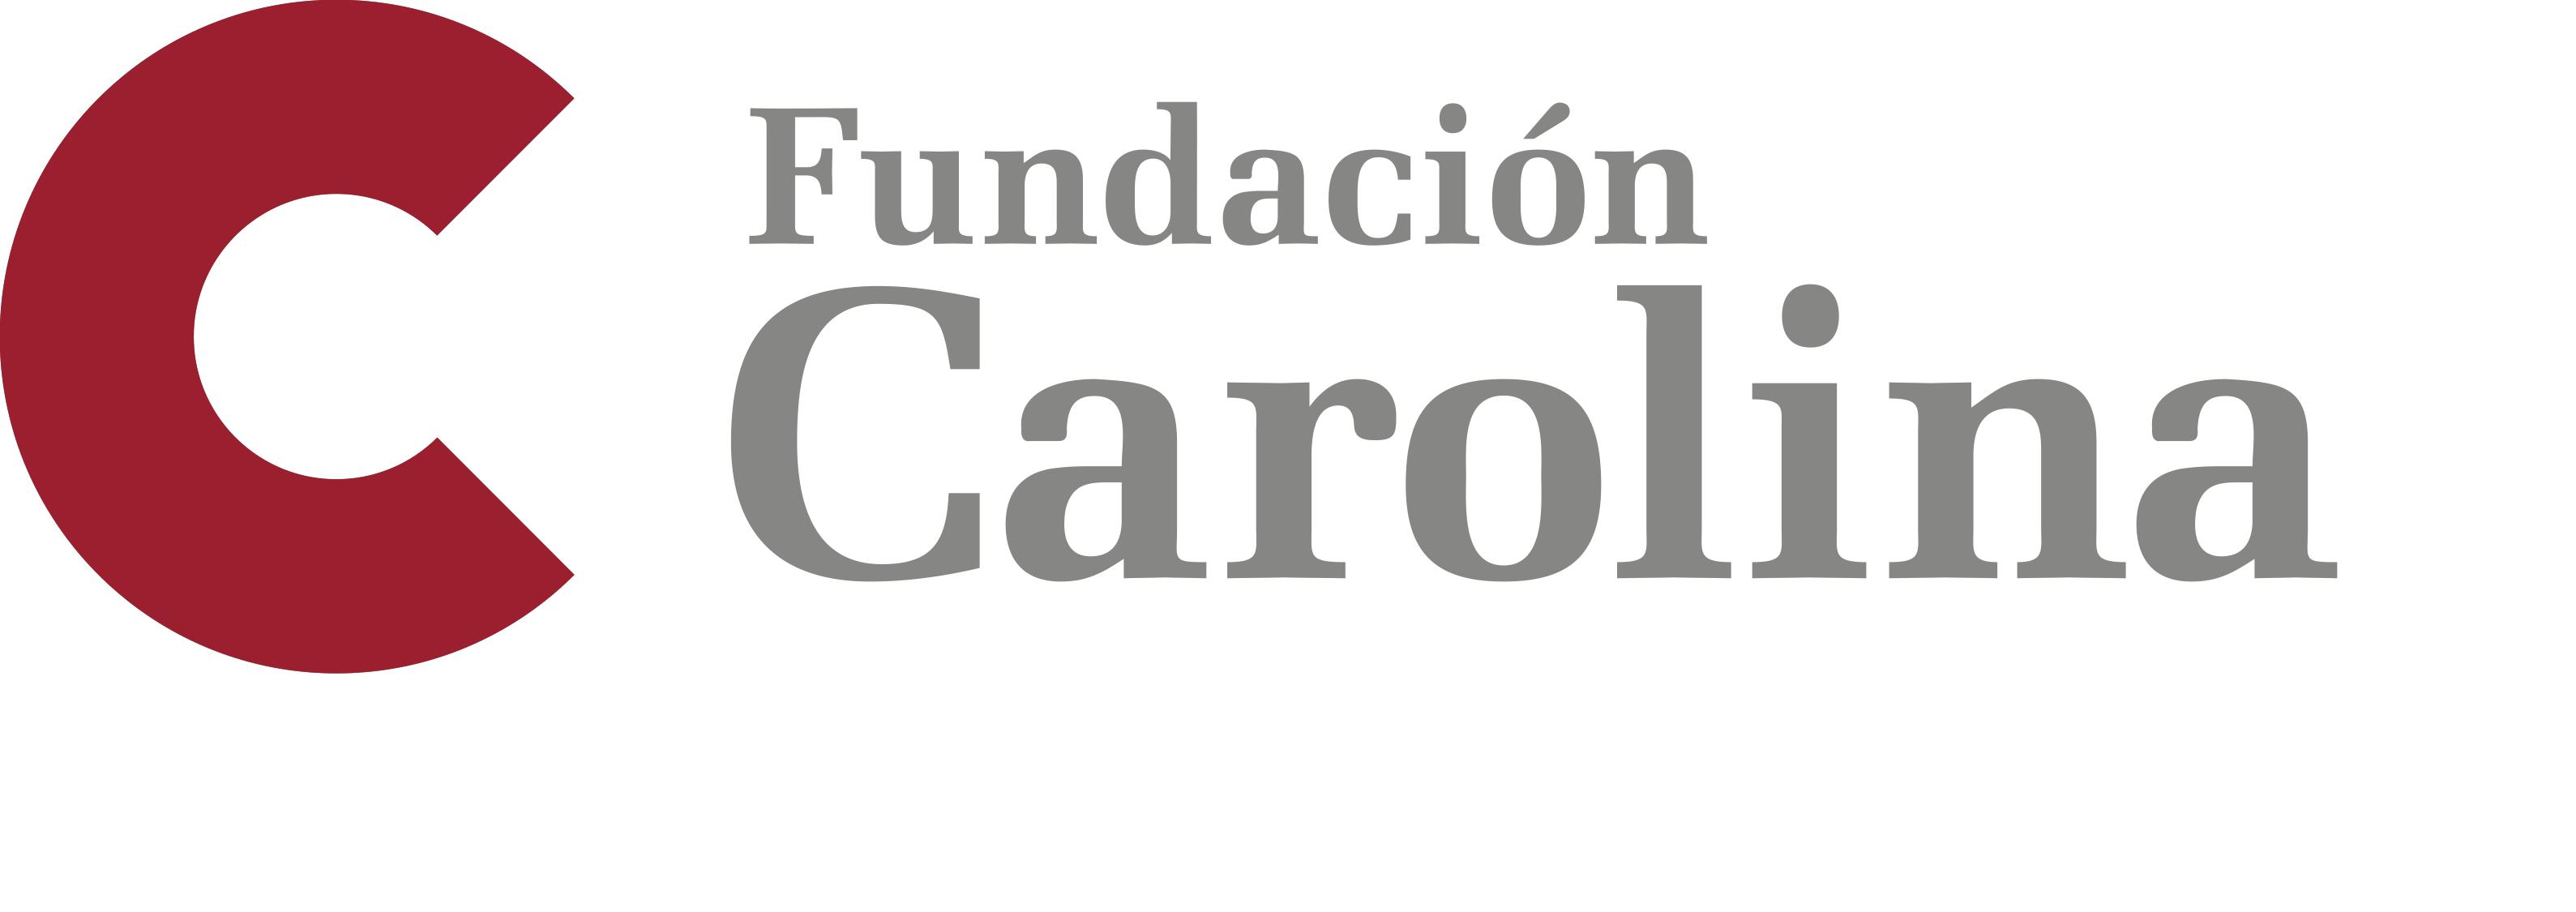 logo fundacicn carolina horizontal